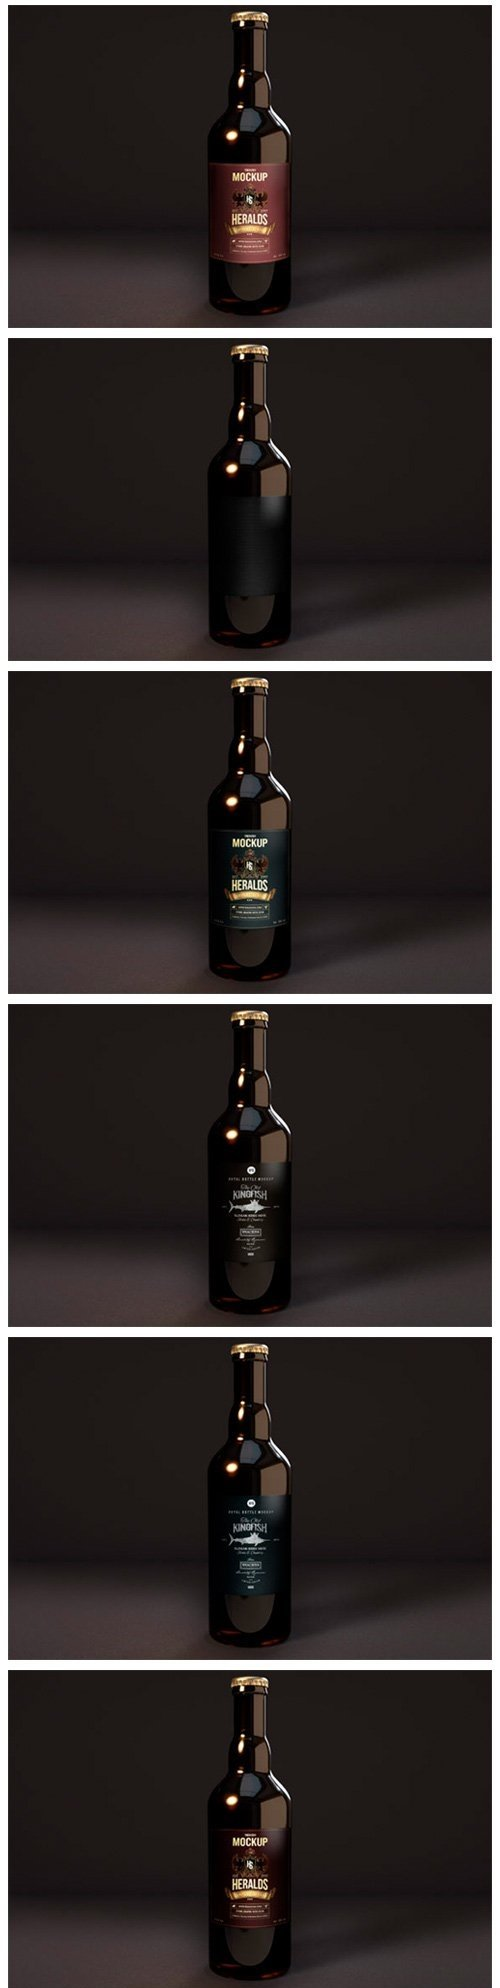 Premium Beer Bottle Mockup - DARKIII - 4501953